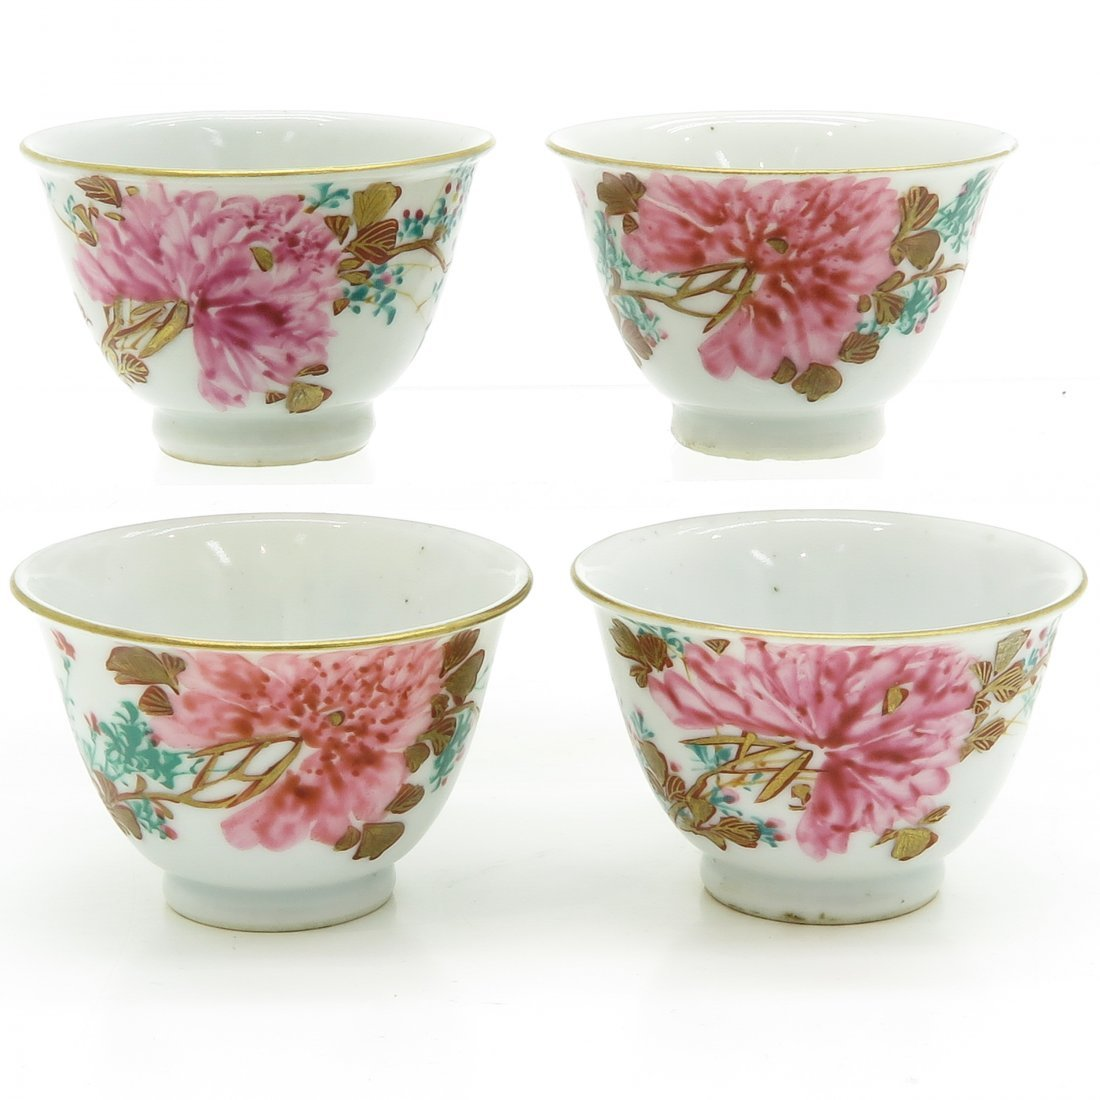 Lot of 4 Famille Rose Decor Cups